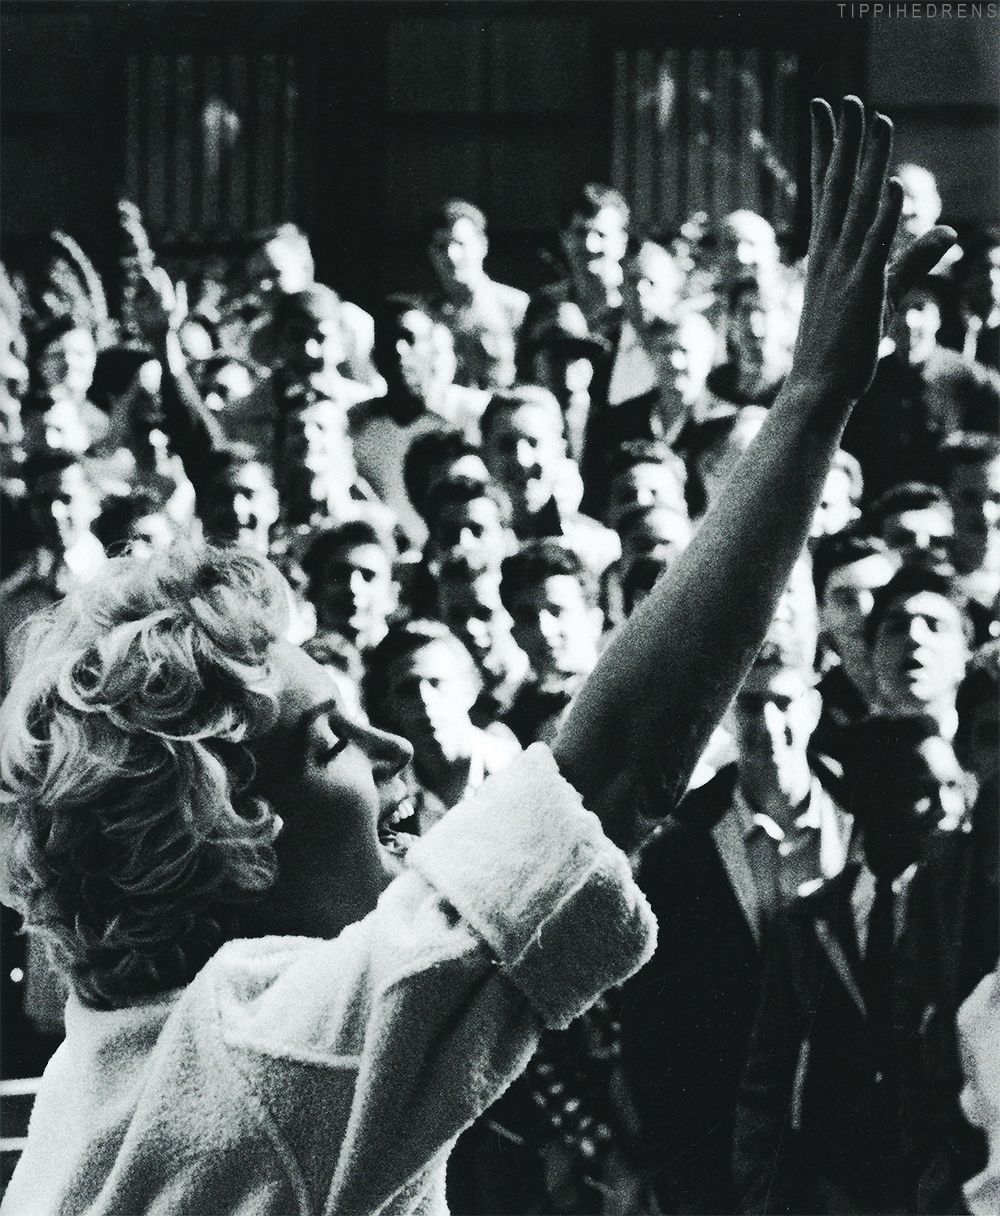 Marilyn Monroe happily waves to her adoring fans from her NY apartment during the filming of The Seven Year Itch, 1954.